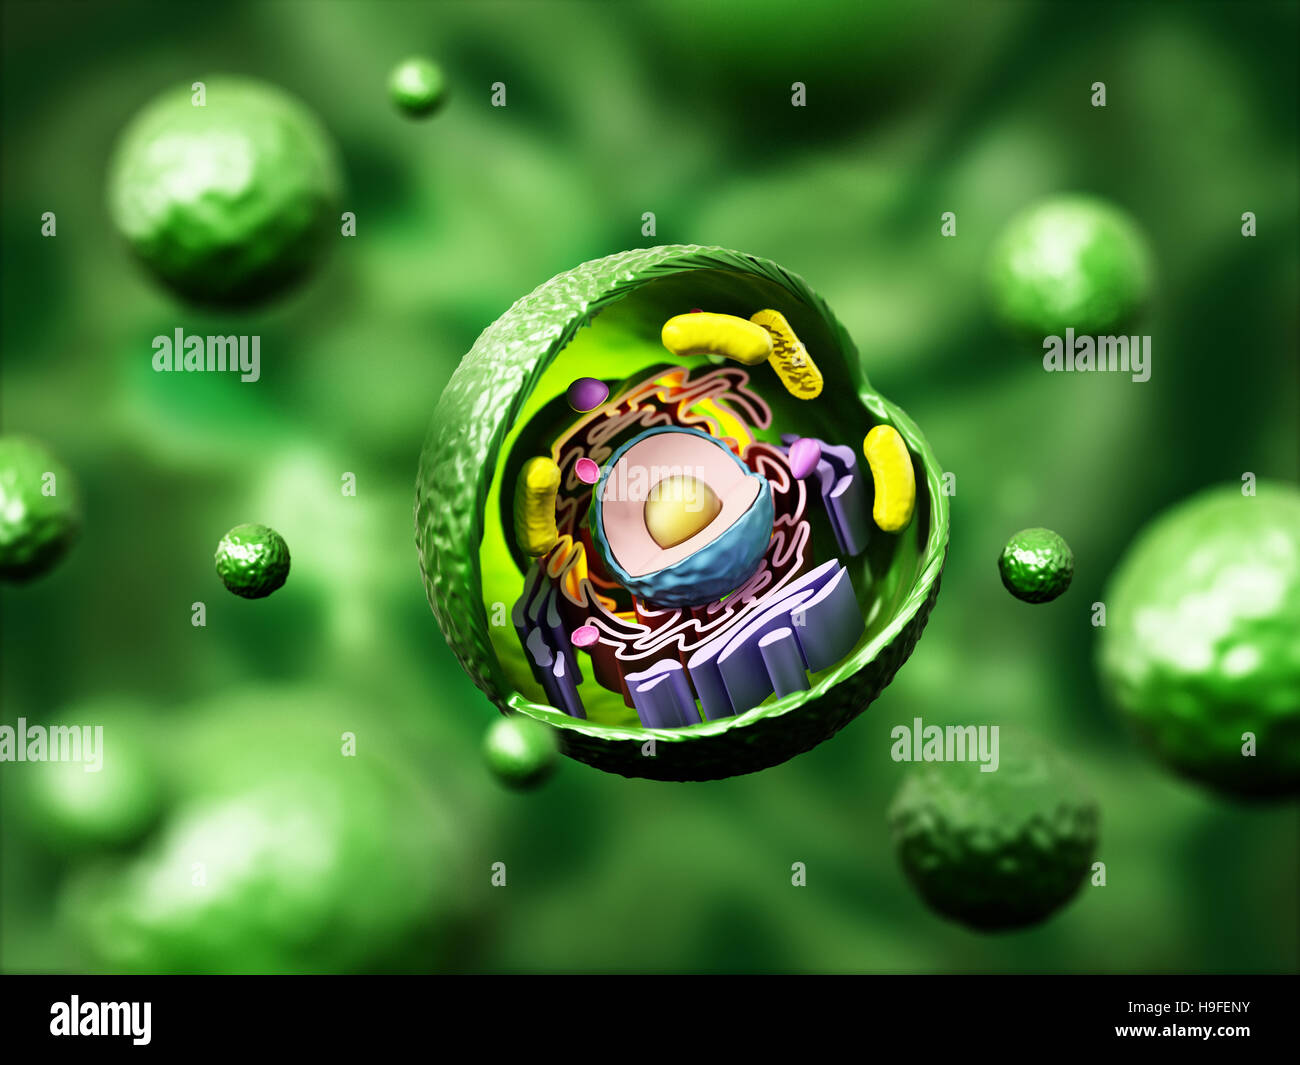 Cell Biology Stock Photos Images Alamy 3d Plant Diagram From Textbook Image Gallery Animal Anatomy On Green Background Illustration